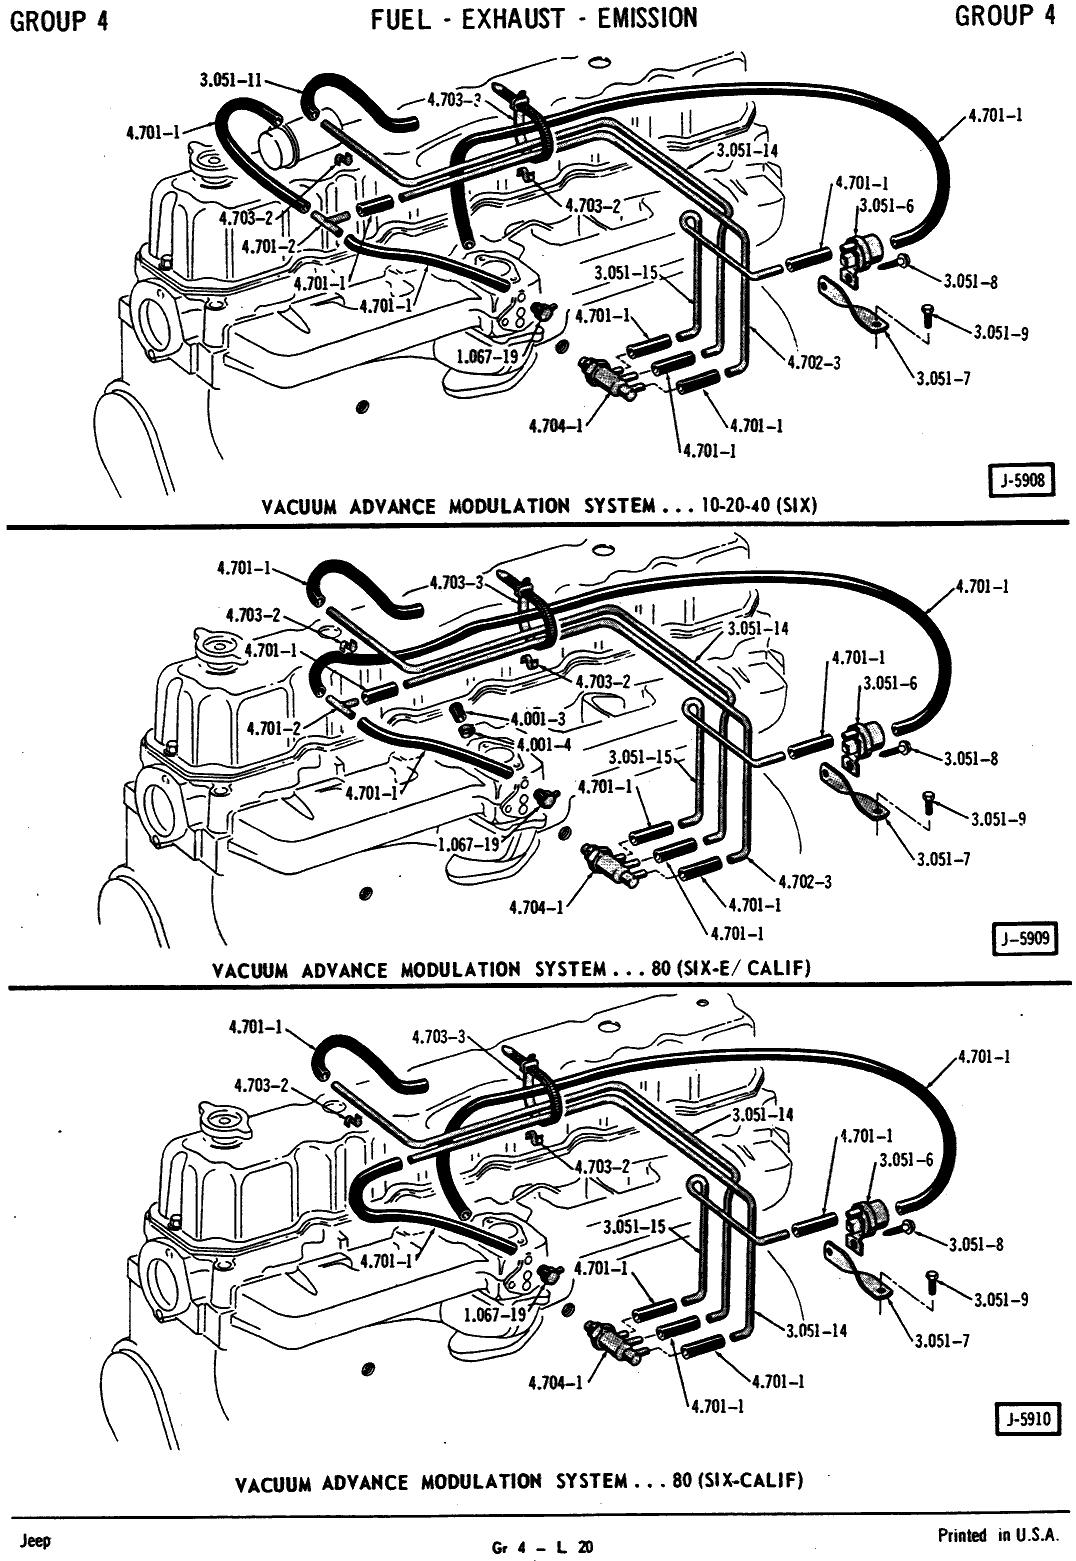 Starter 1972 Chevy Truck Wiring Diagram as well P 0900c15280080baa further 1965 Ford F100 Dash Gauges Wiring furthermore Vacuumhoses also RepairGuideContent. on 79 chevy ignition wiring diagram